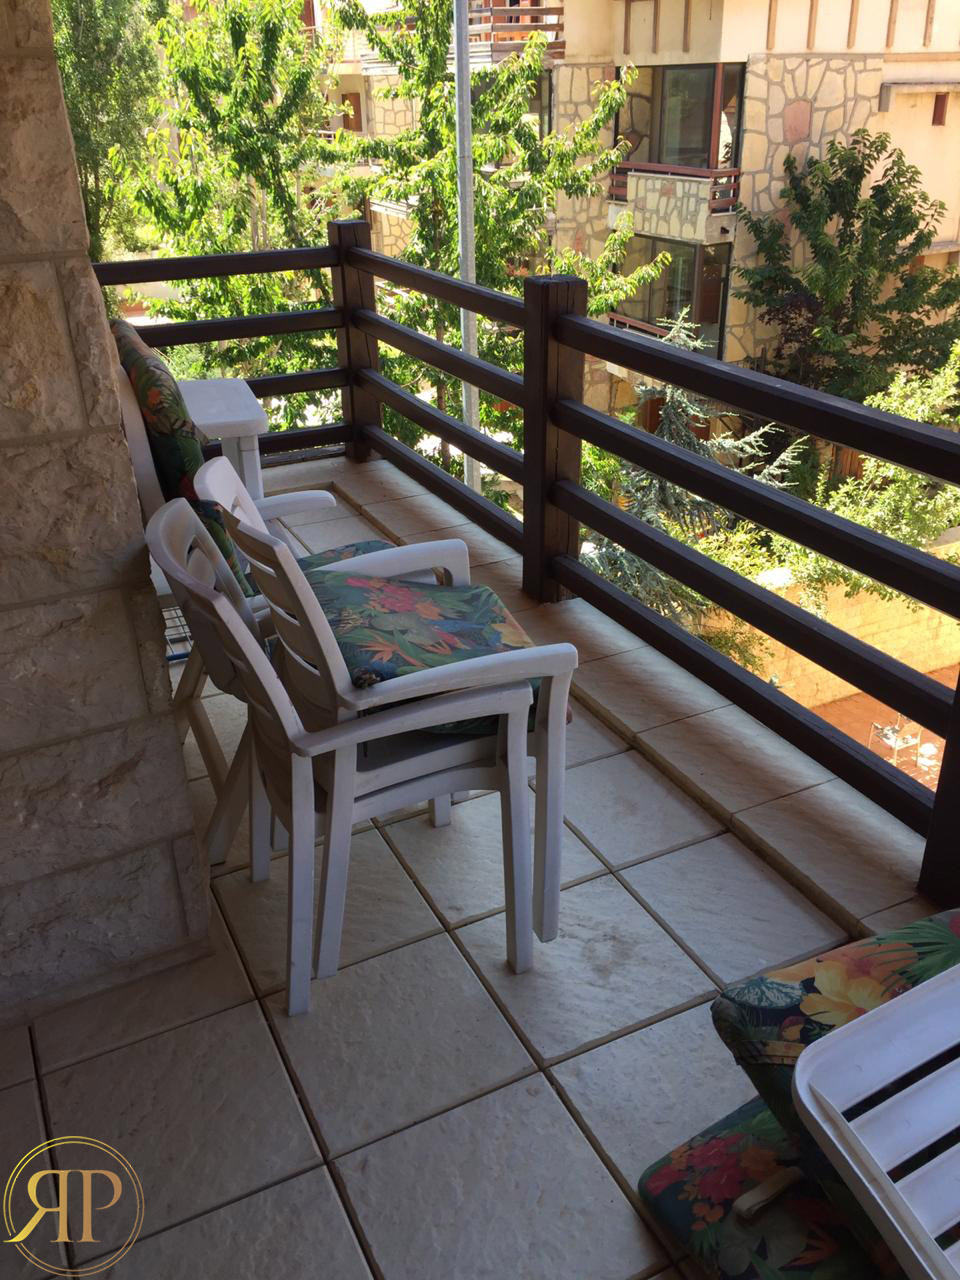 Chalet in Keserwan, Mzaar 2000 - perfect getaway!